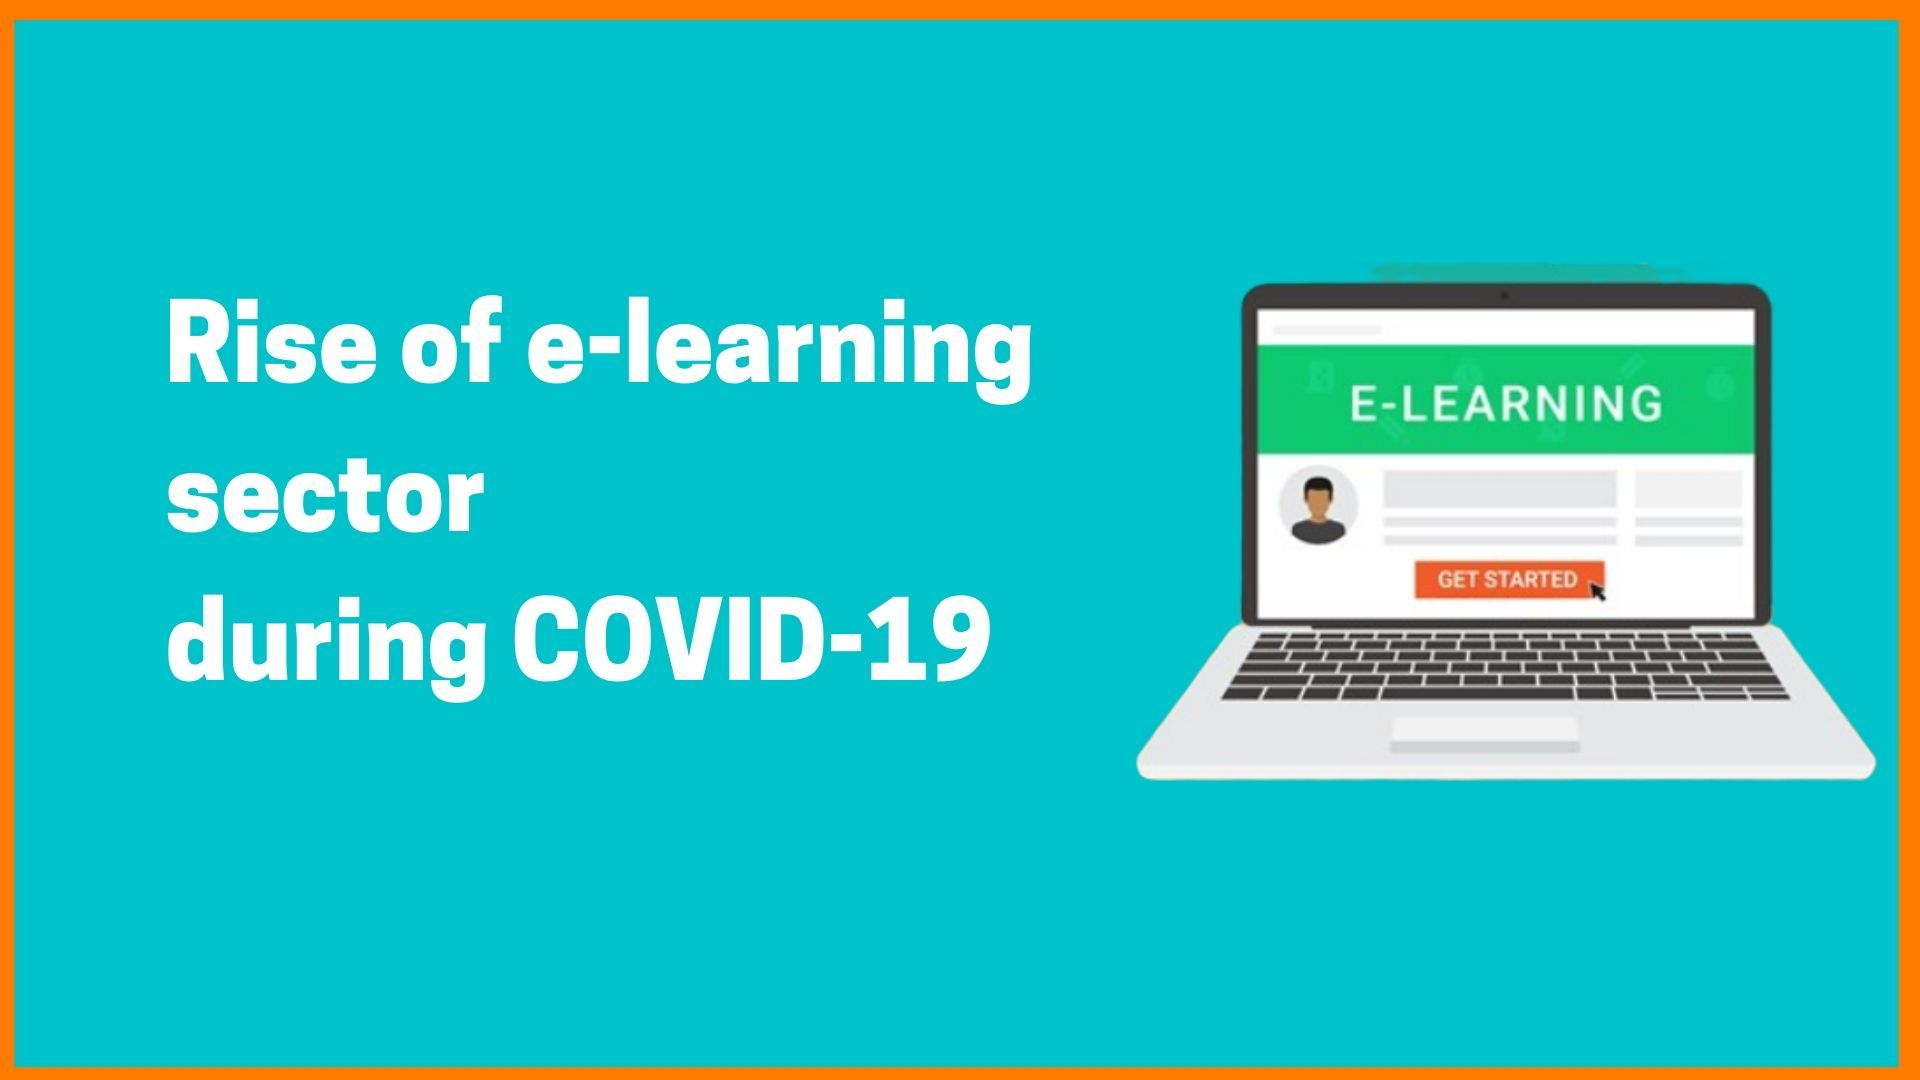 Rise of e-learning sector during COVID-19